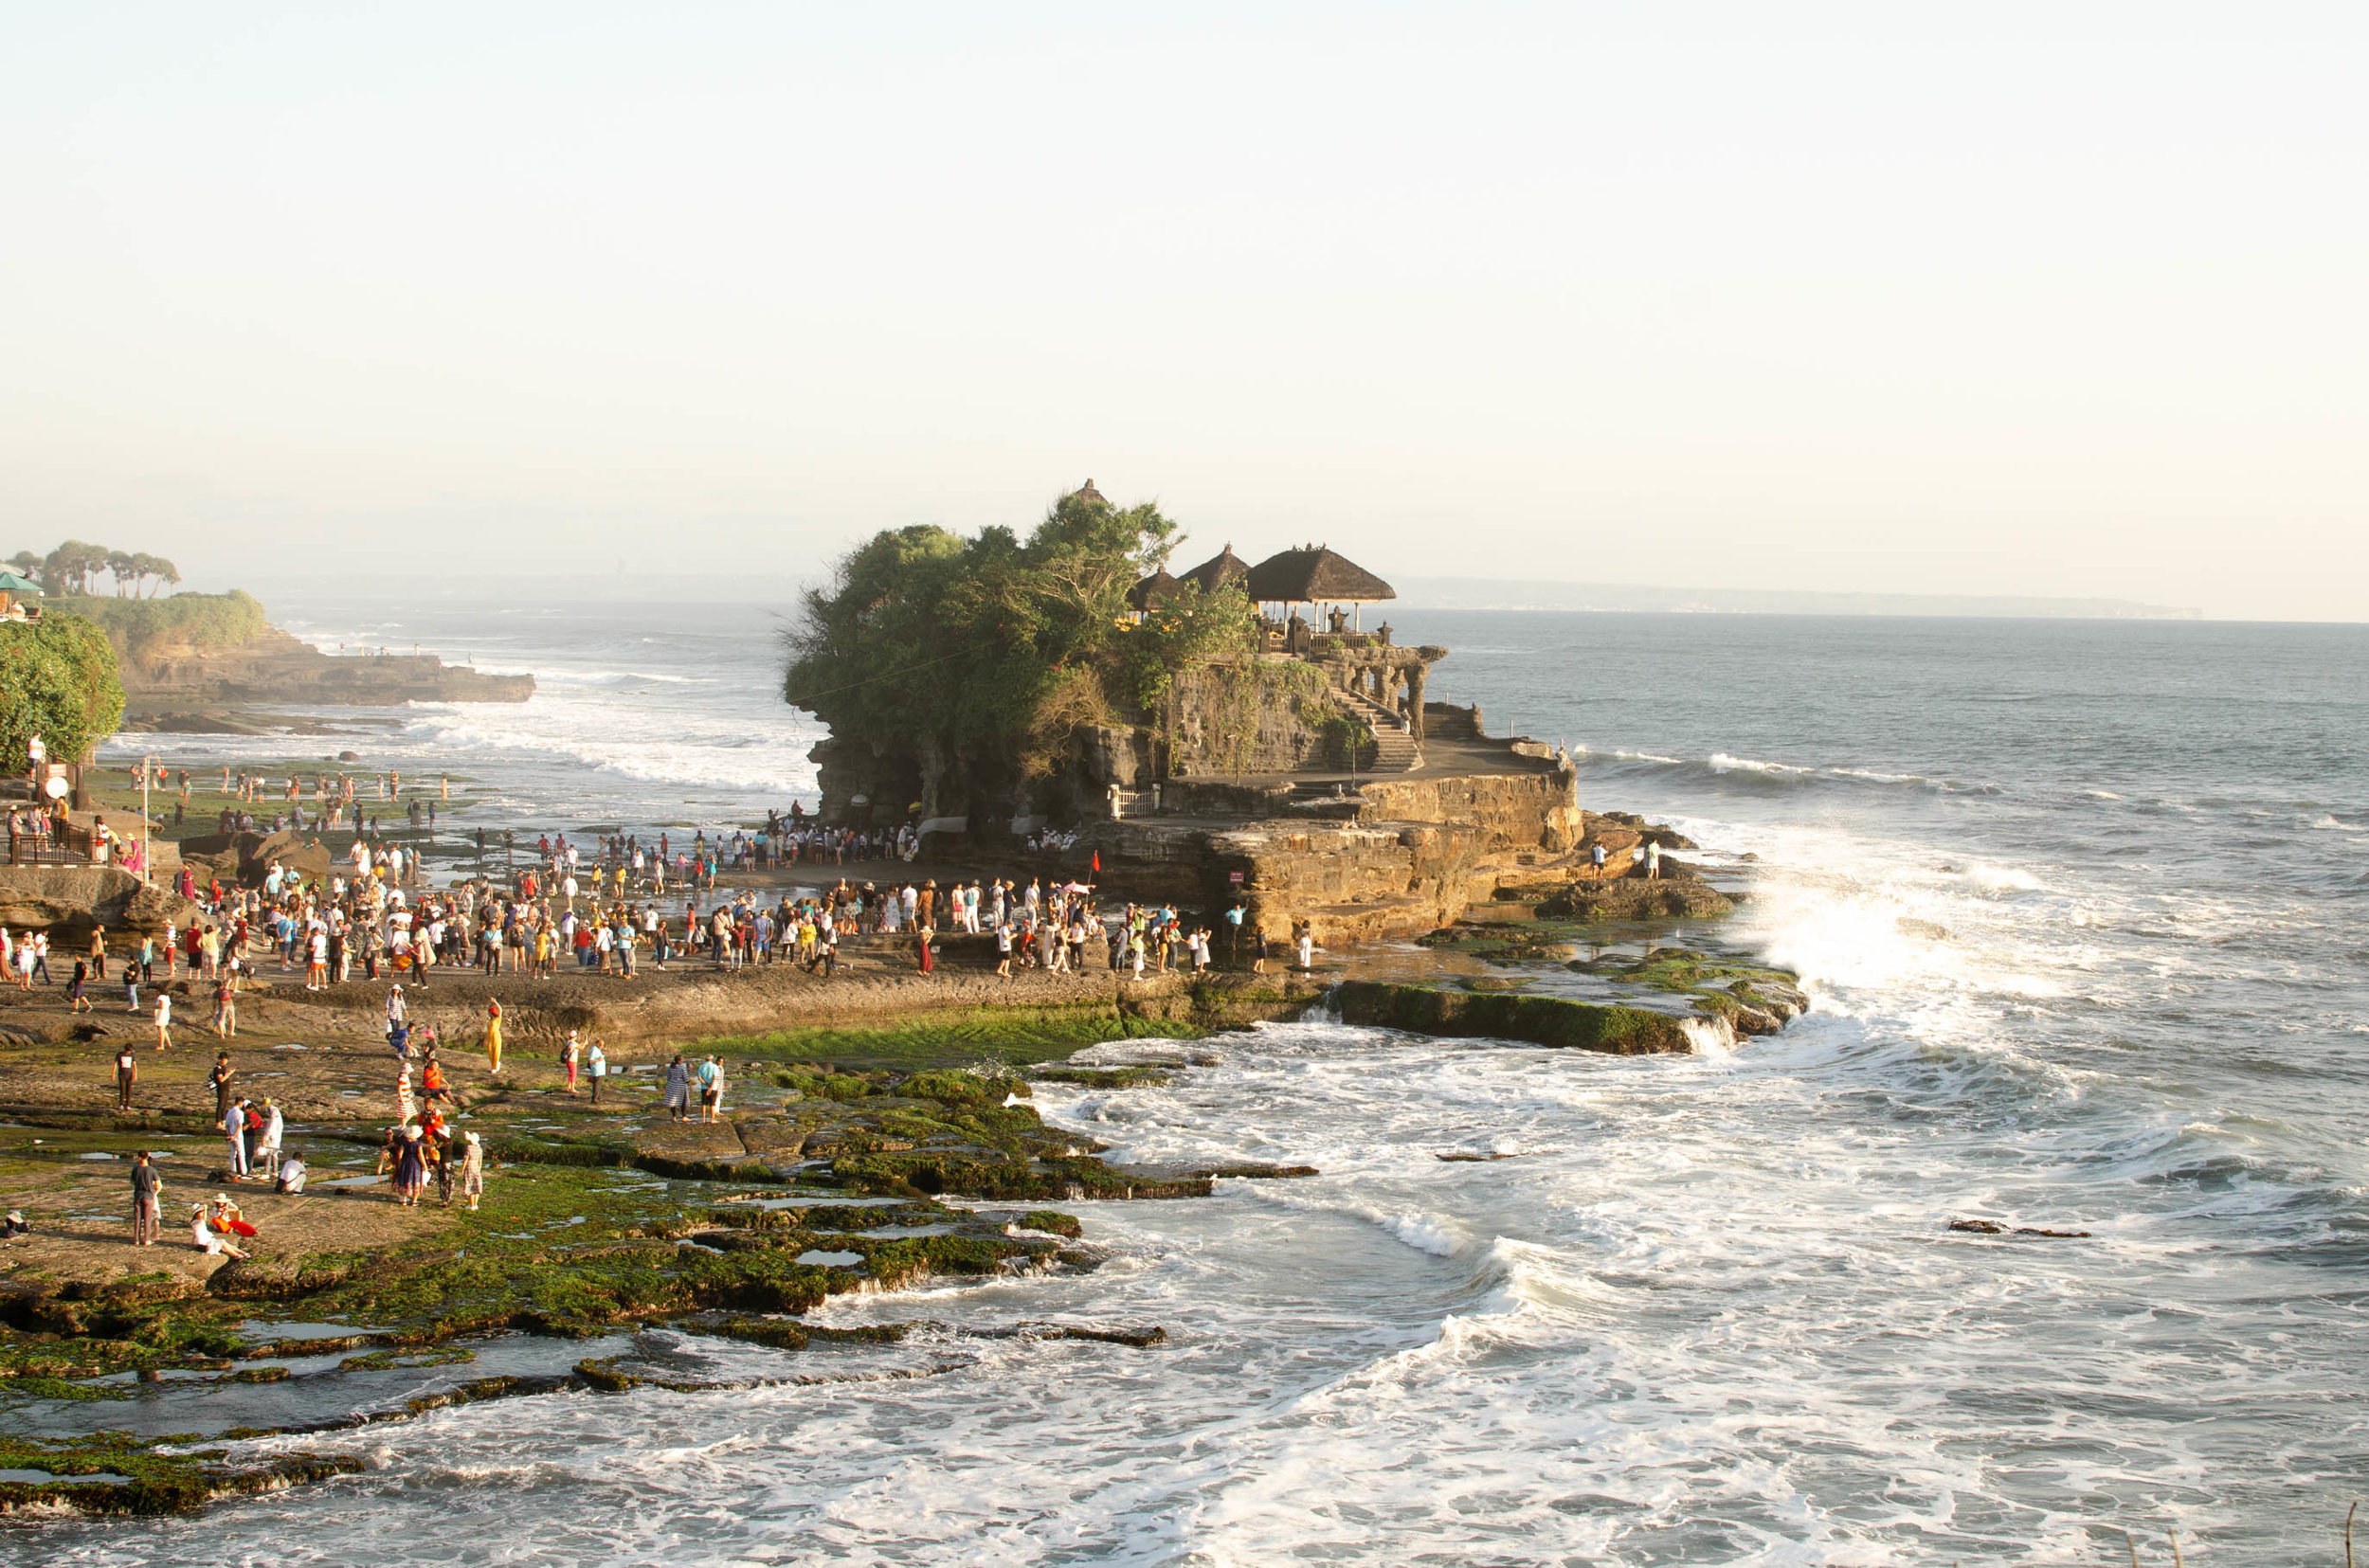 It's hard to get a picture of Tanah Lot without tourists in it